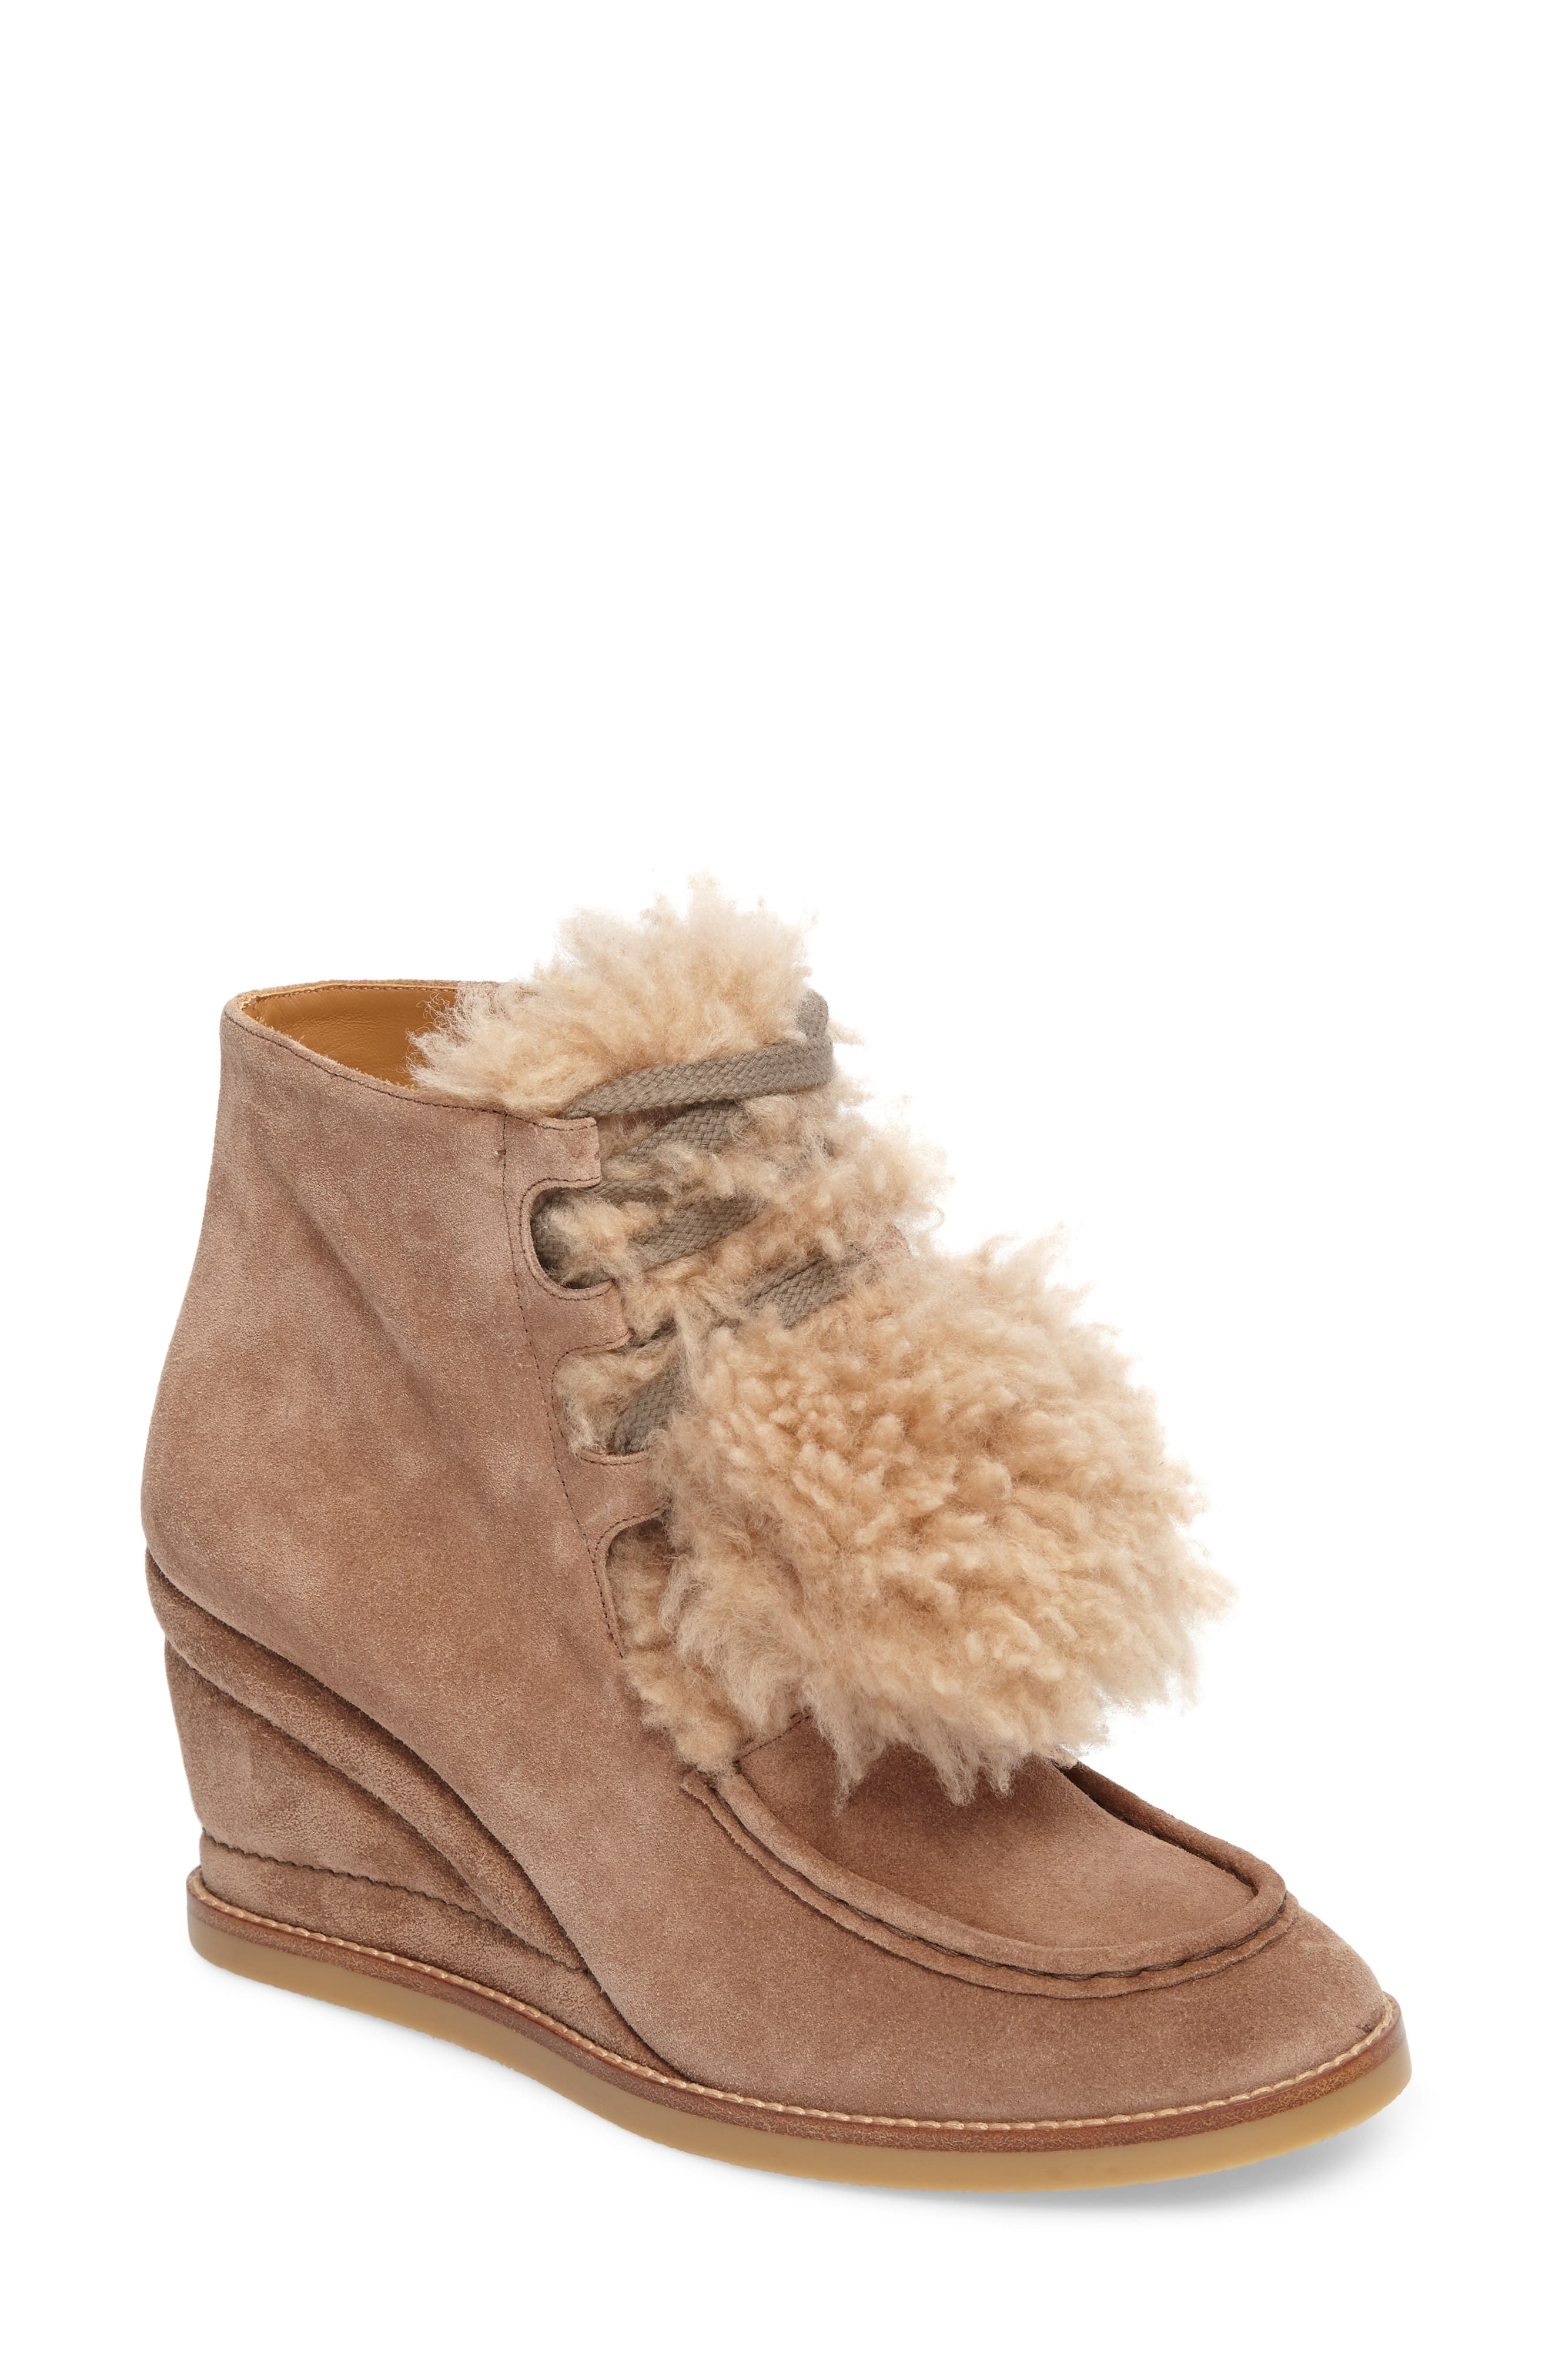 Peggy Genuine Shearling Wedge Bootie,                             Main thumbnail 1, color,                             250